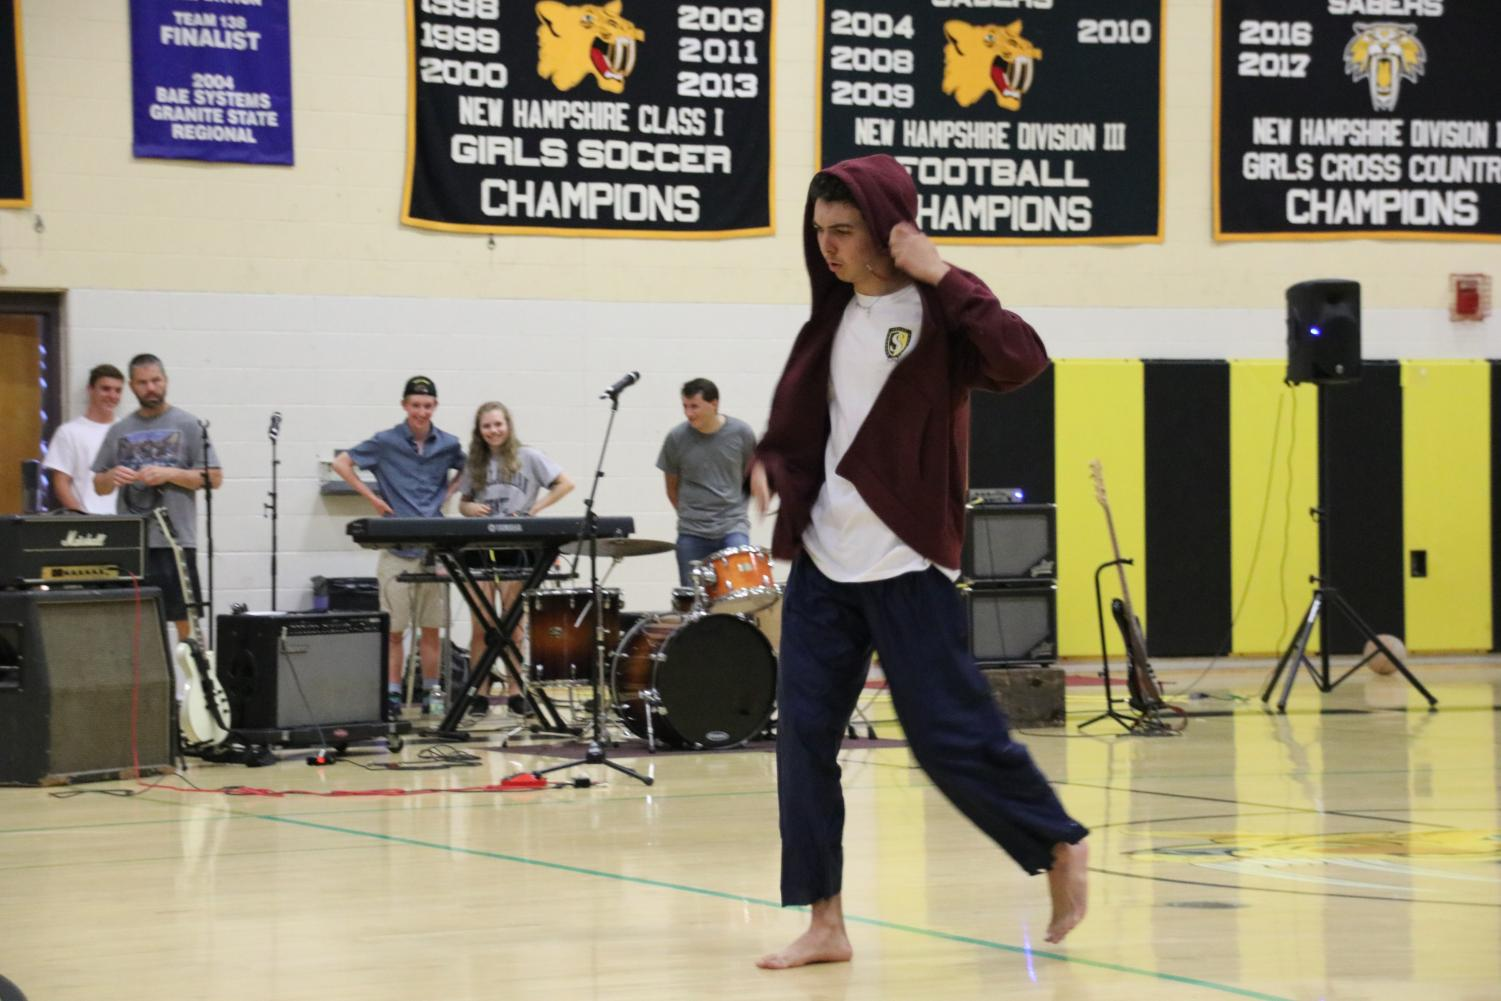 Robby+Morel+brought+his+annual+dance+routine+to+this+year%27s+talent+show.